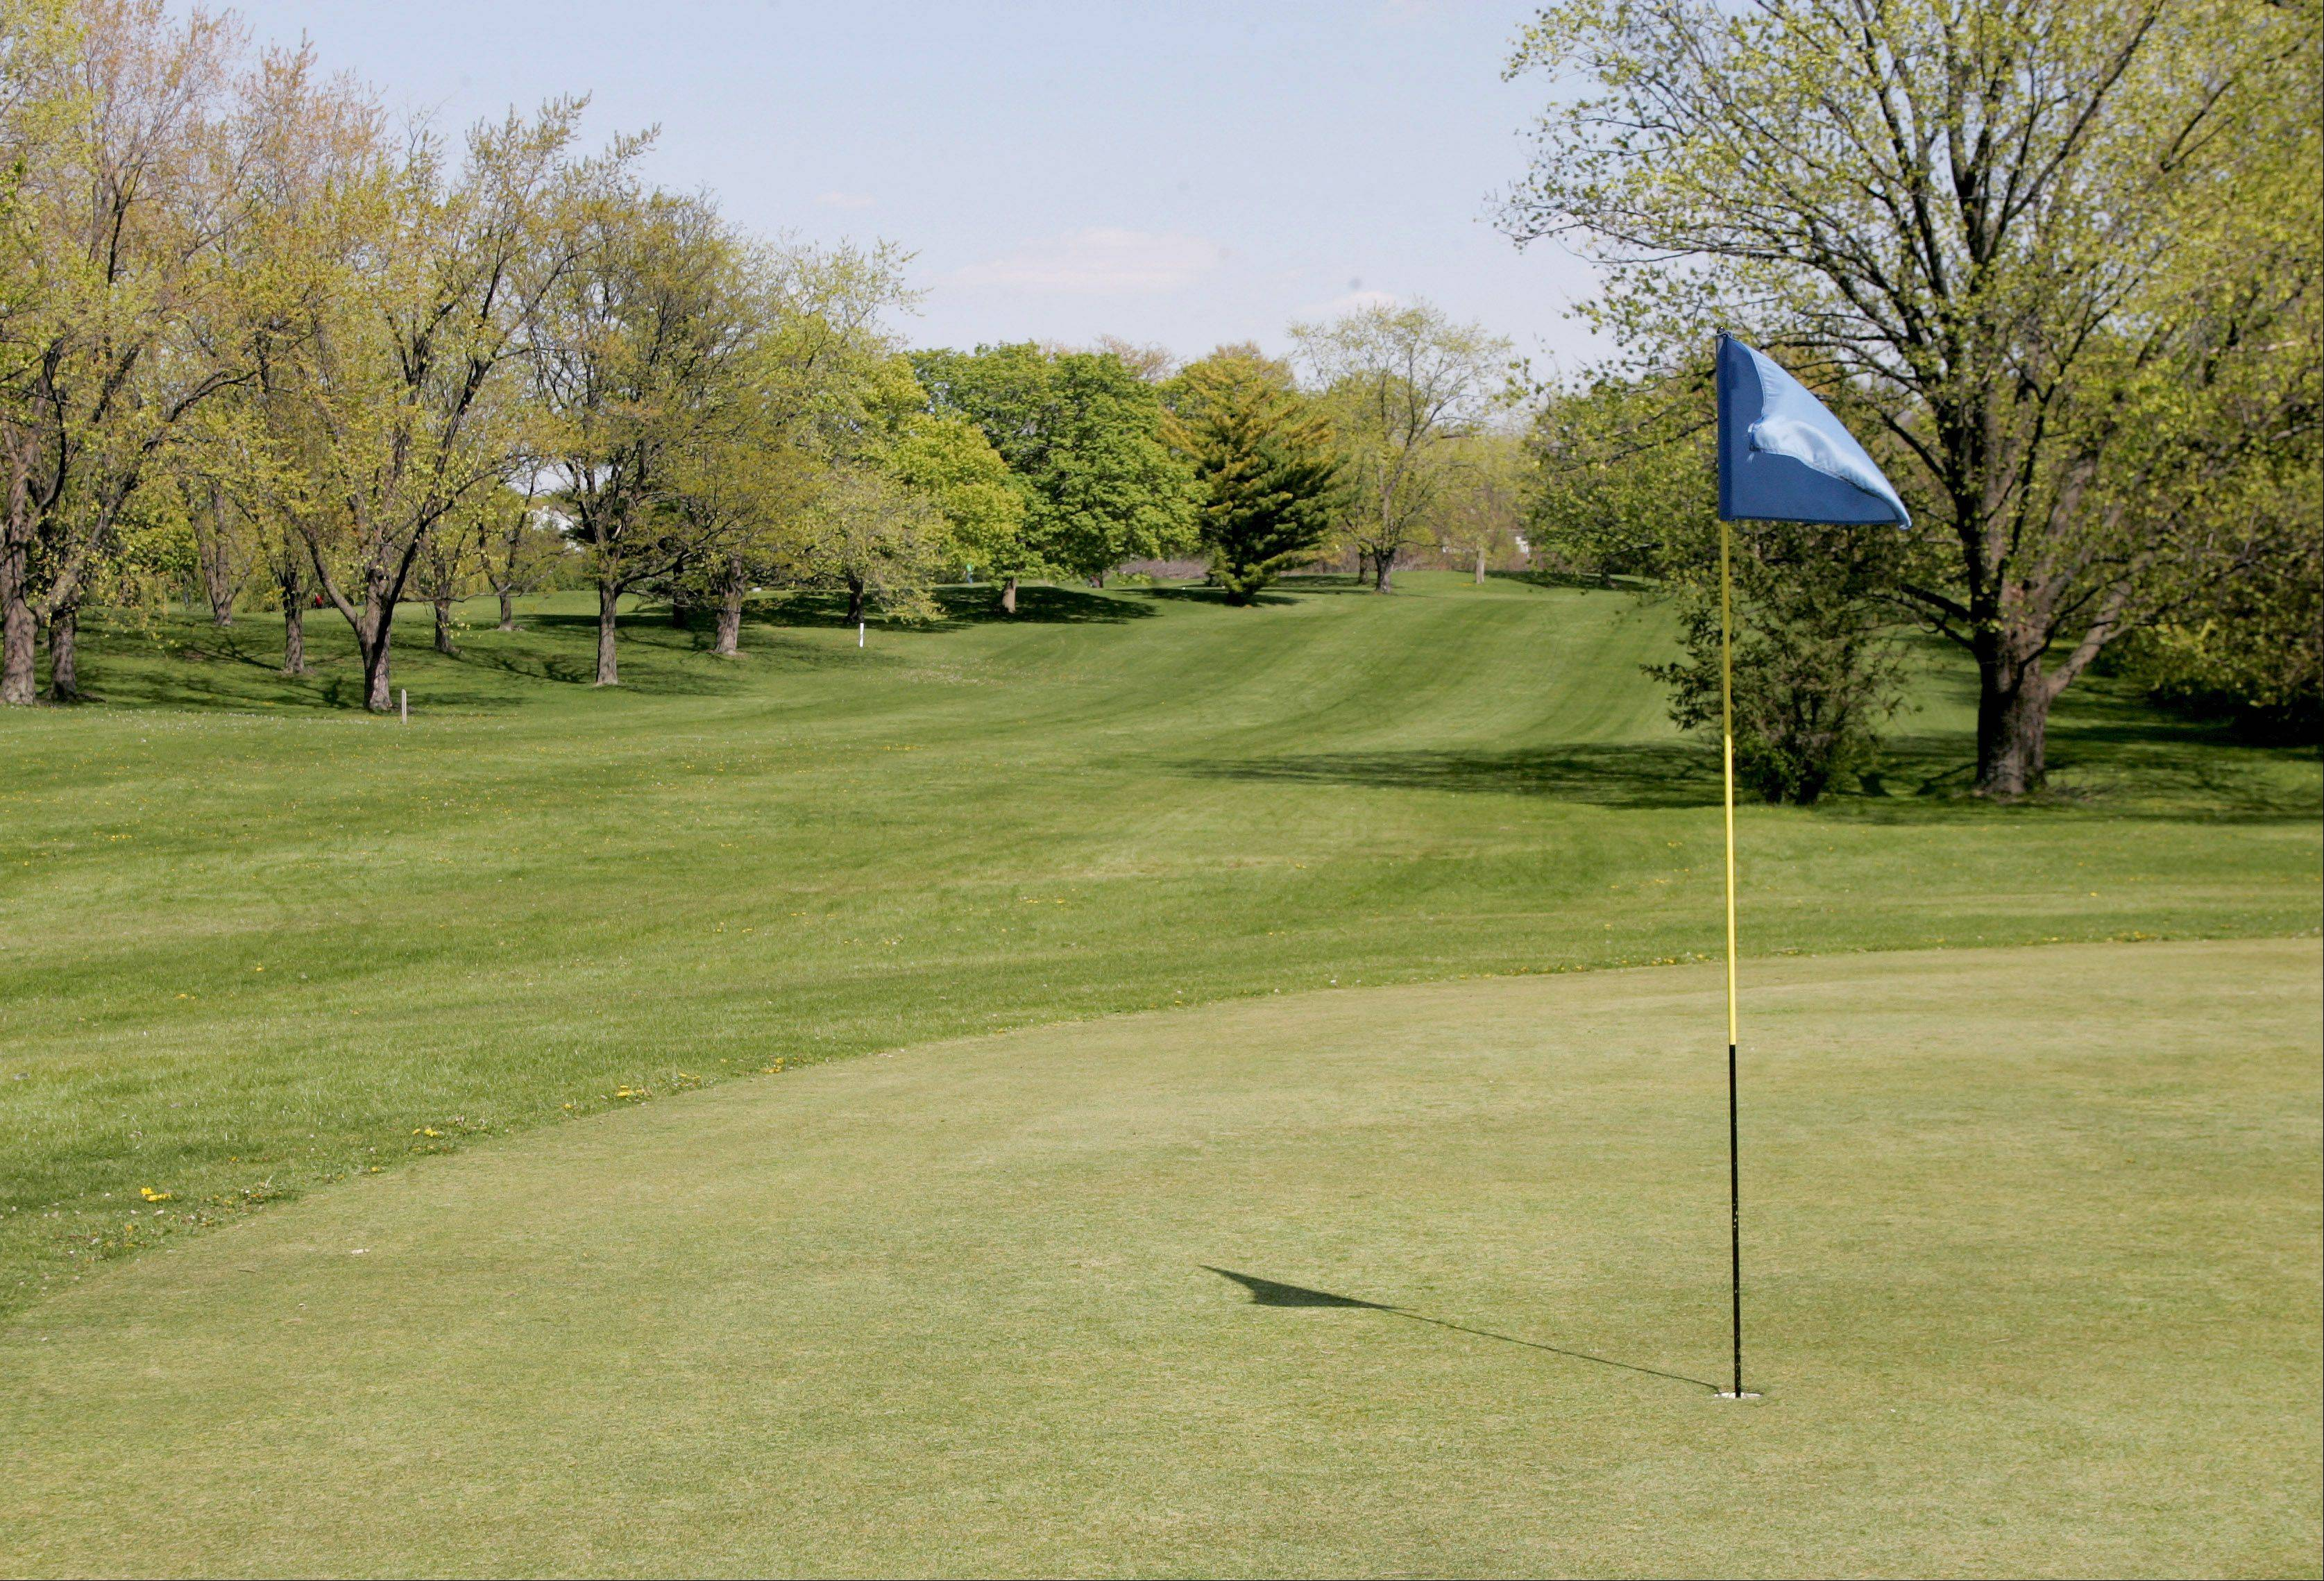 A developer who wants to build apartments and townhouses on what is now the Ken-Loch Golf Links near Lombard is turning to DuPage County for help.